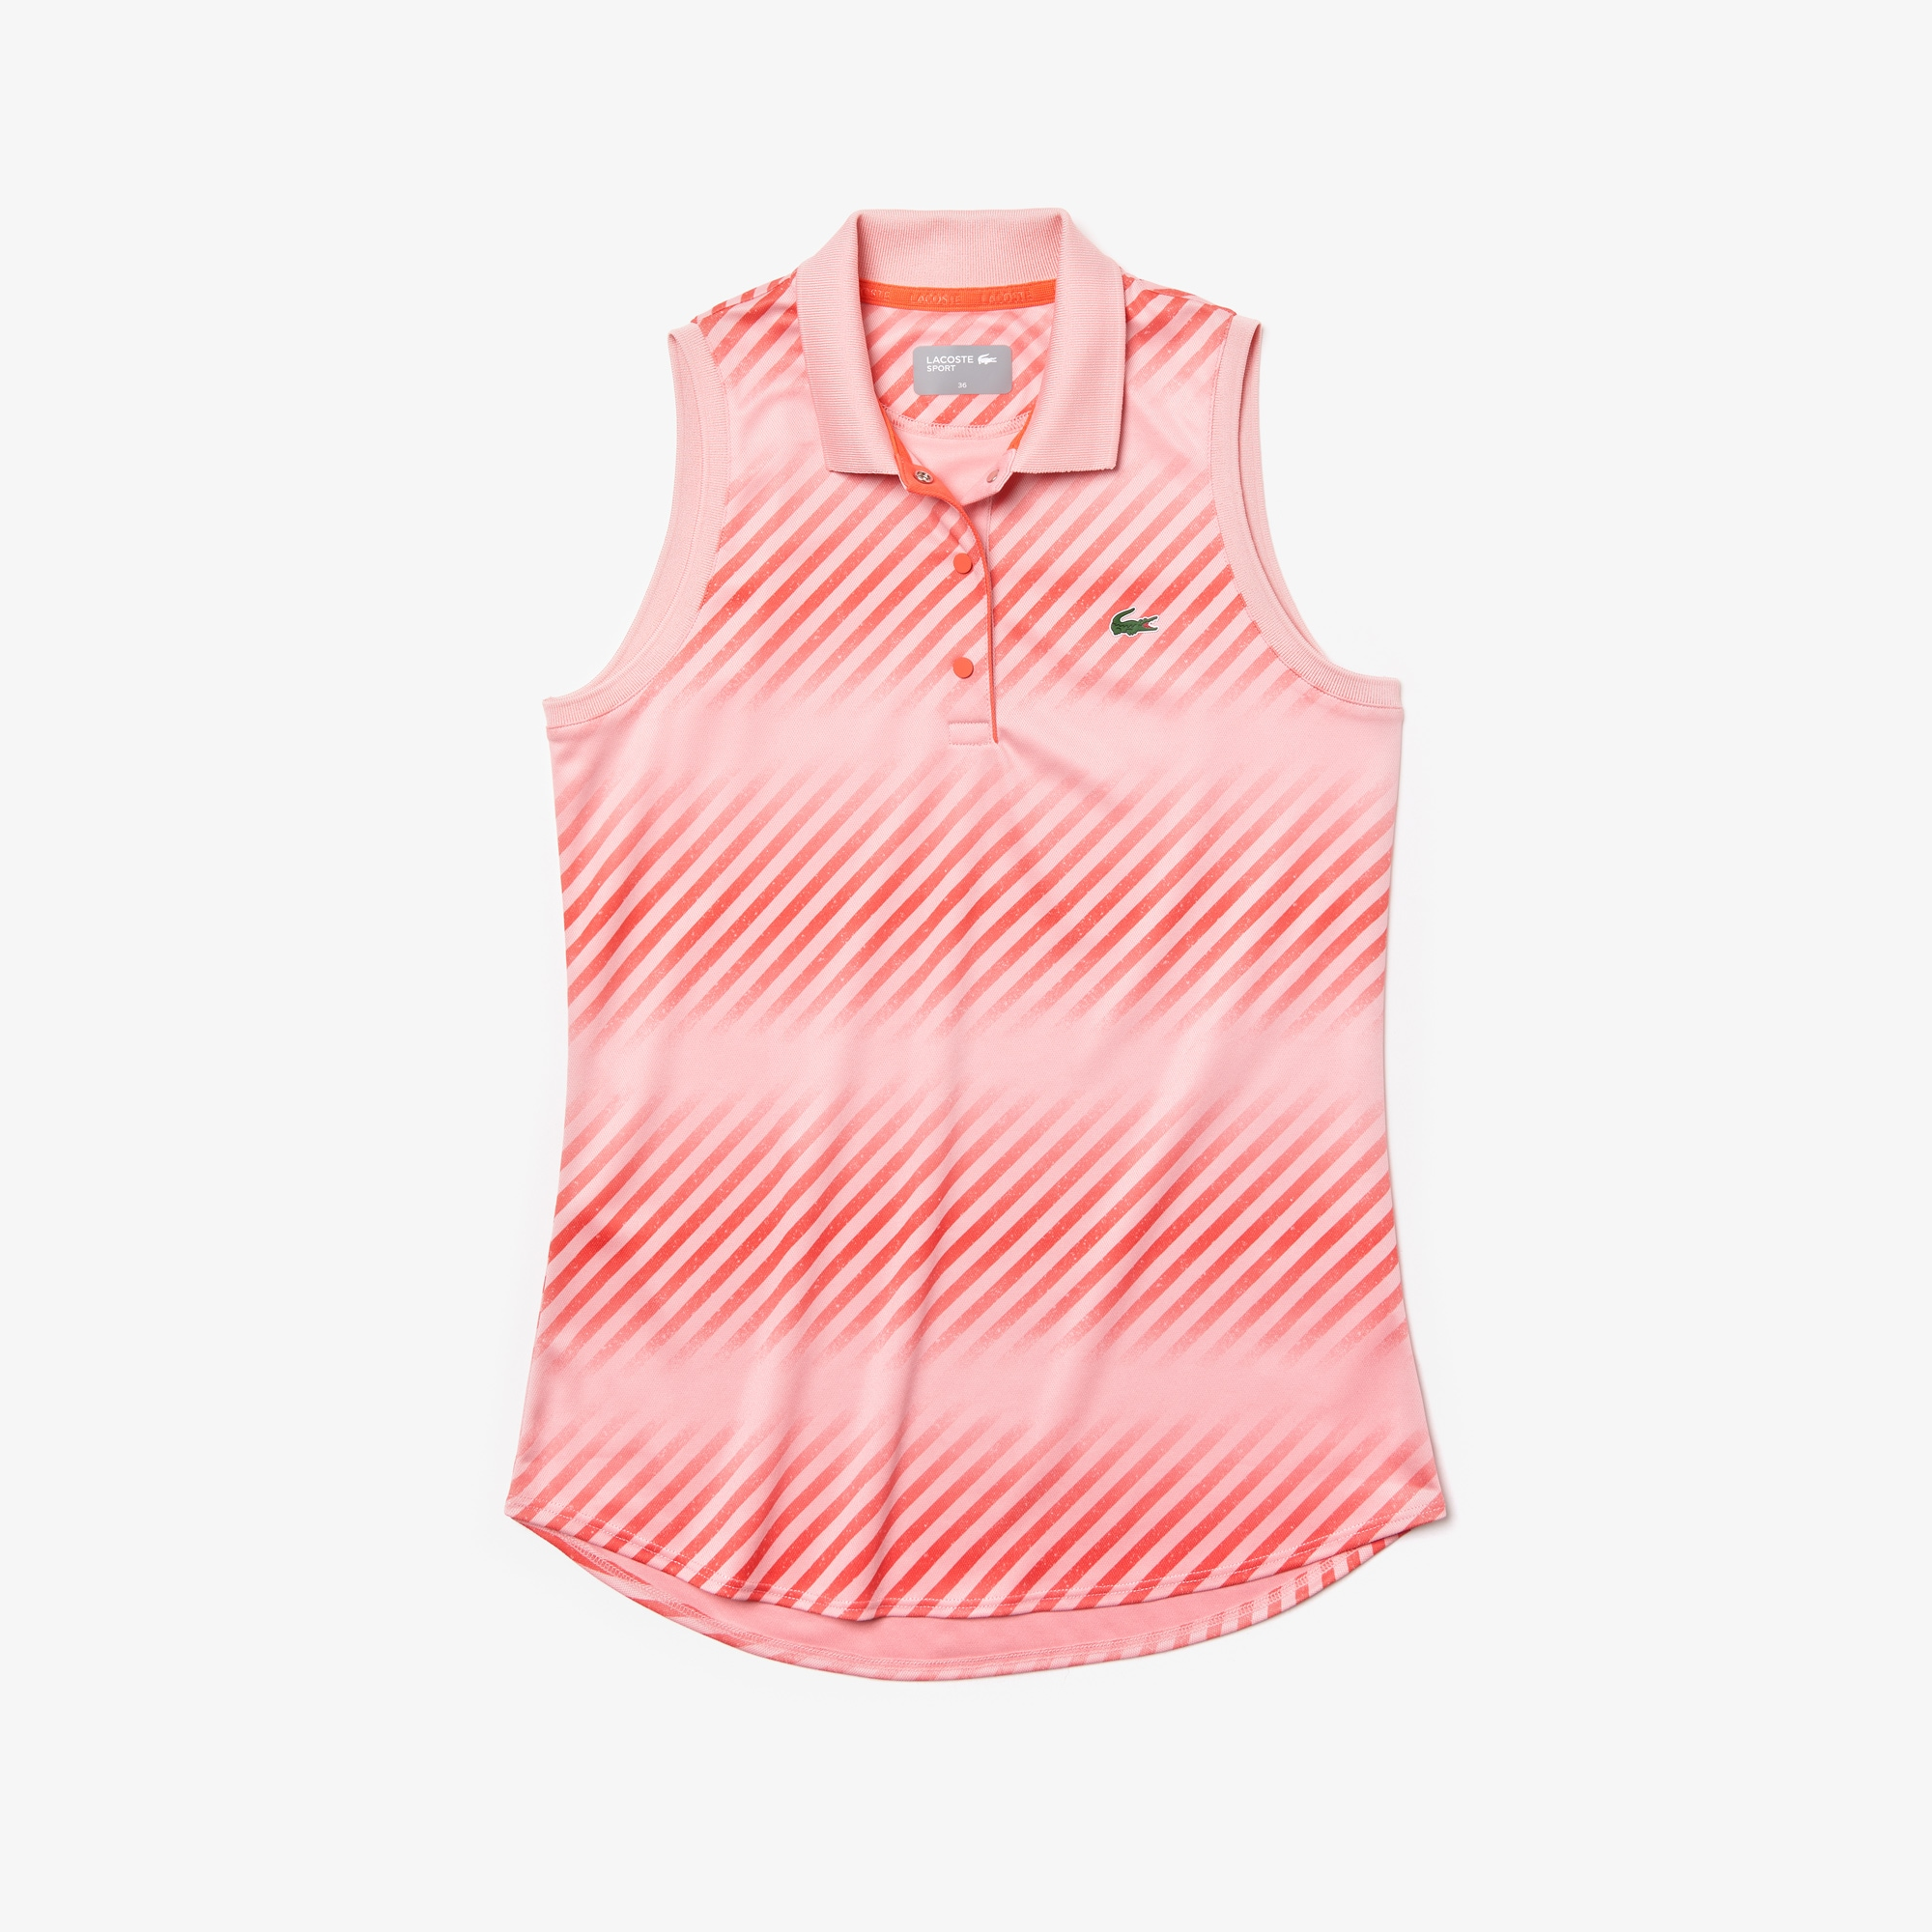 Women's Lacoste SPORT Shaded Striped Breathable Piqué Tennis Polo Shirt